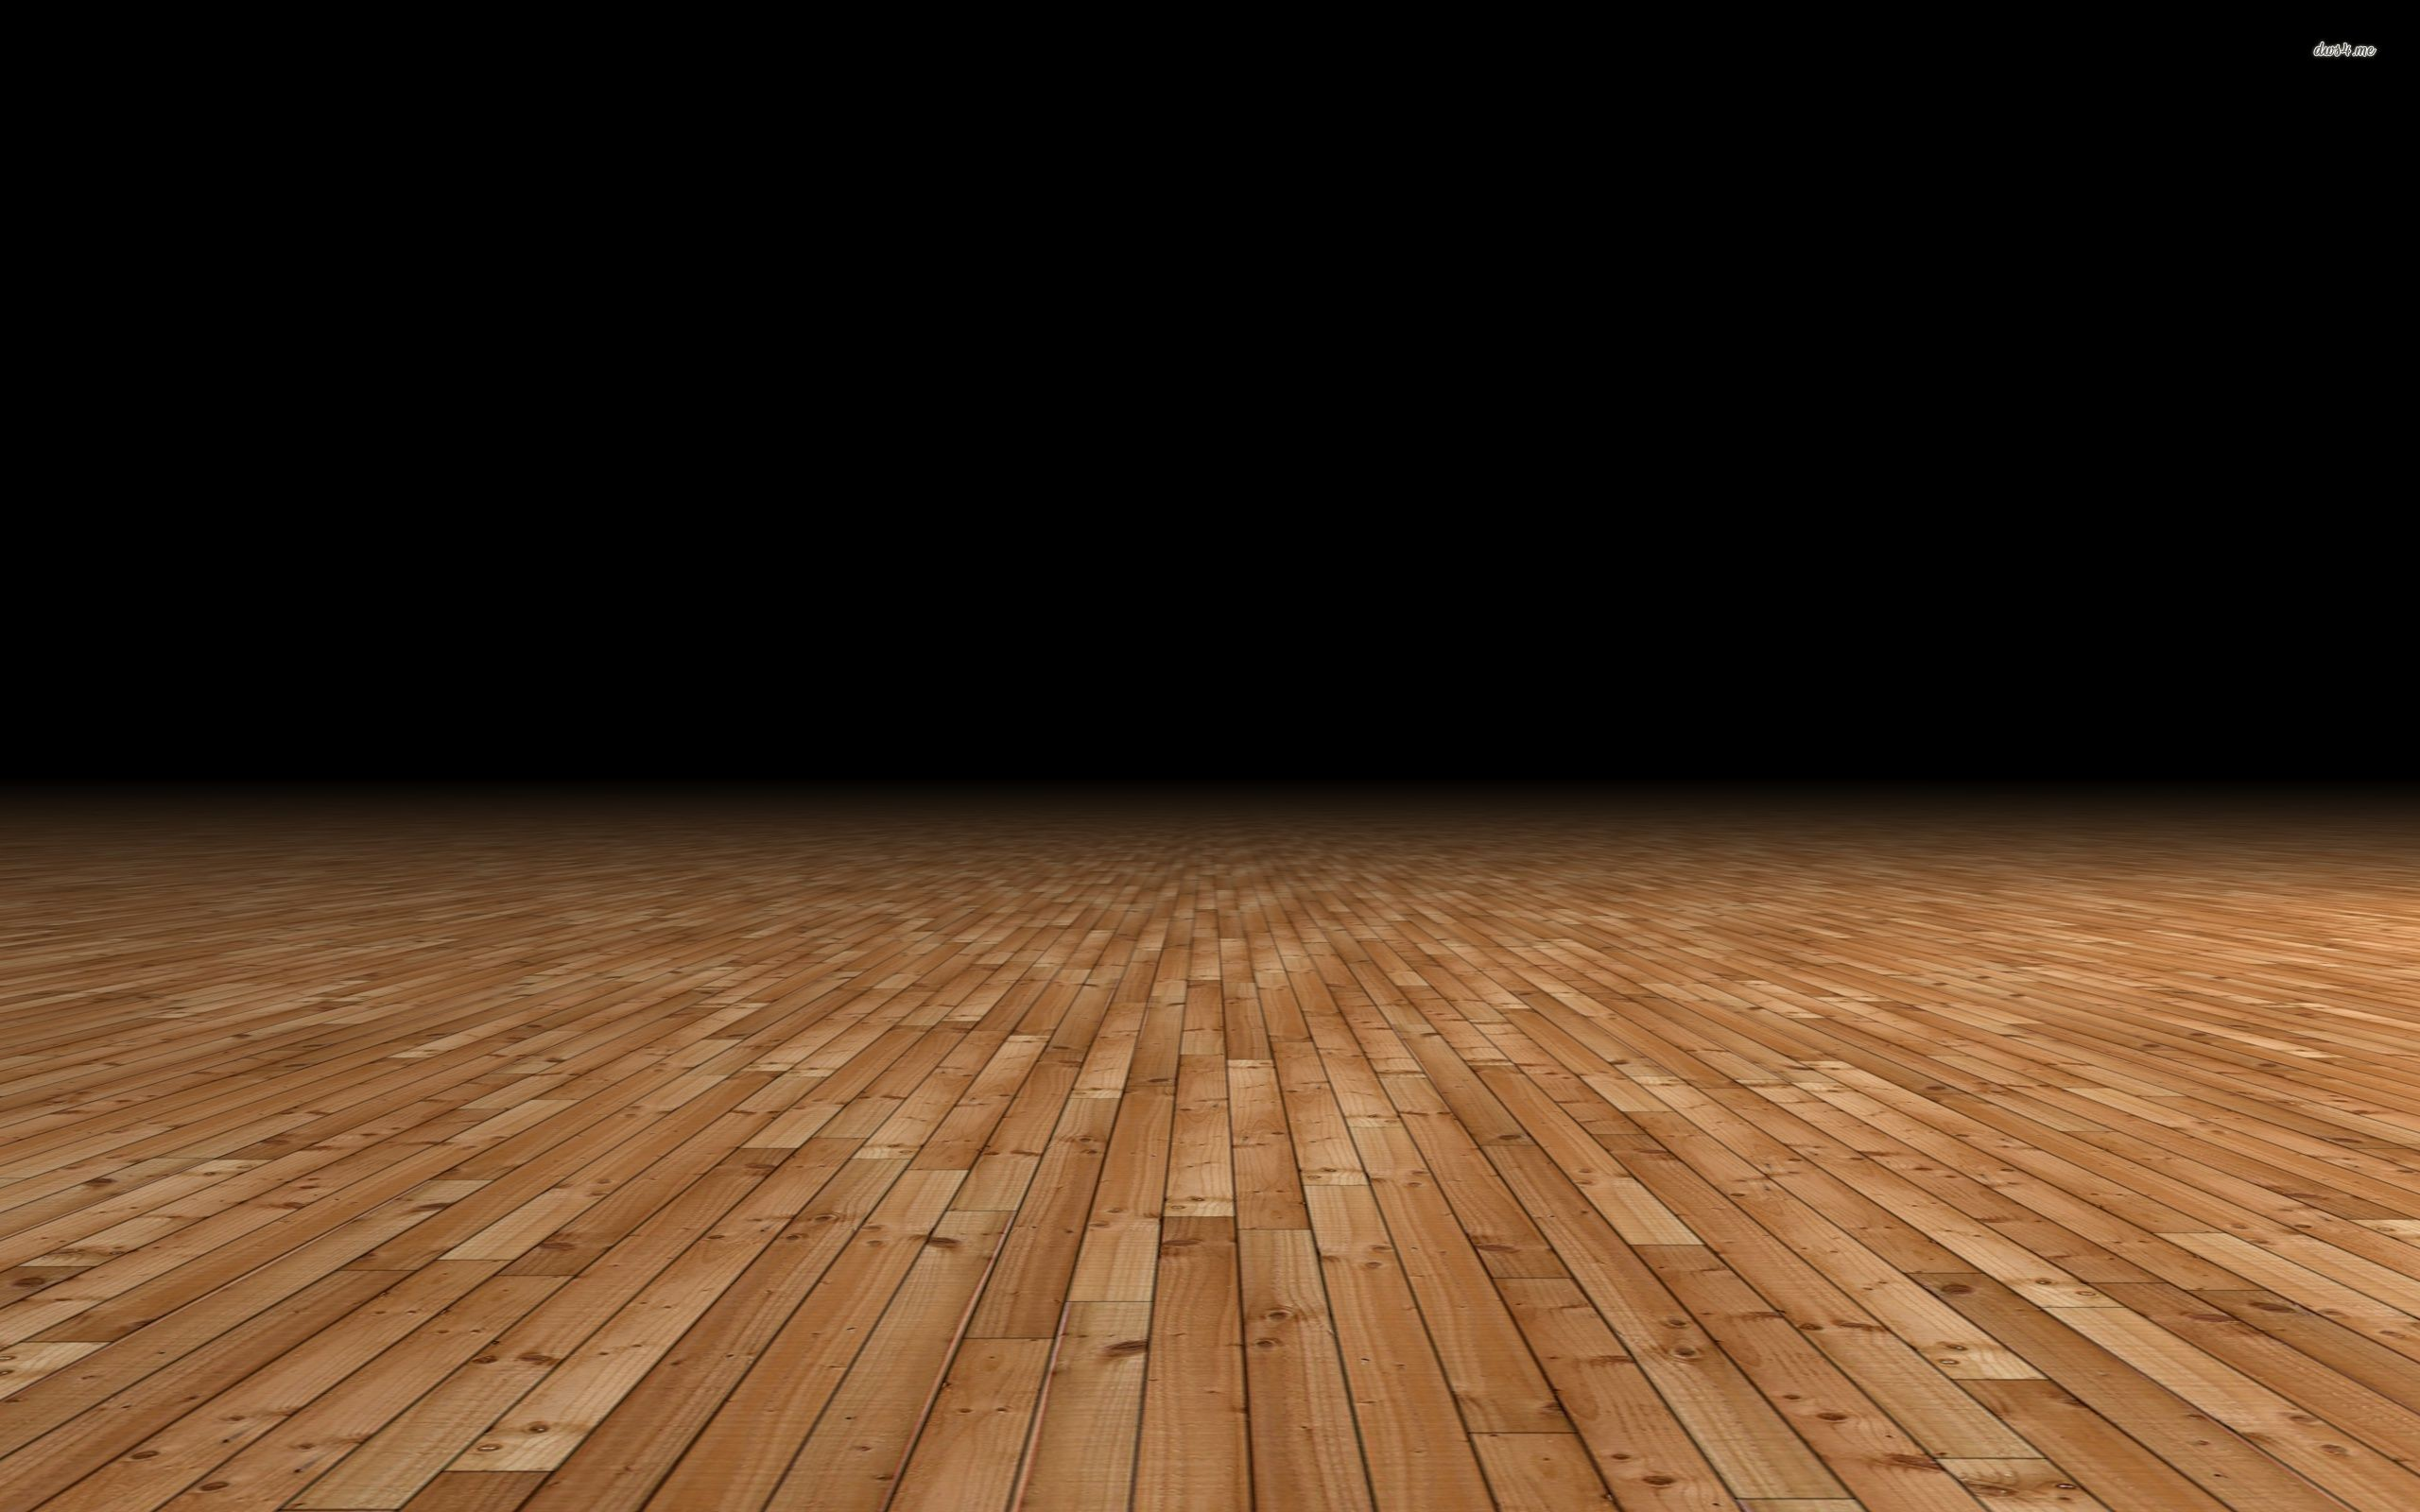 Hardwood Background Hd And Wood Floor Wallpapers Full HD Wallpaper Search  gXFxTEs